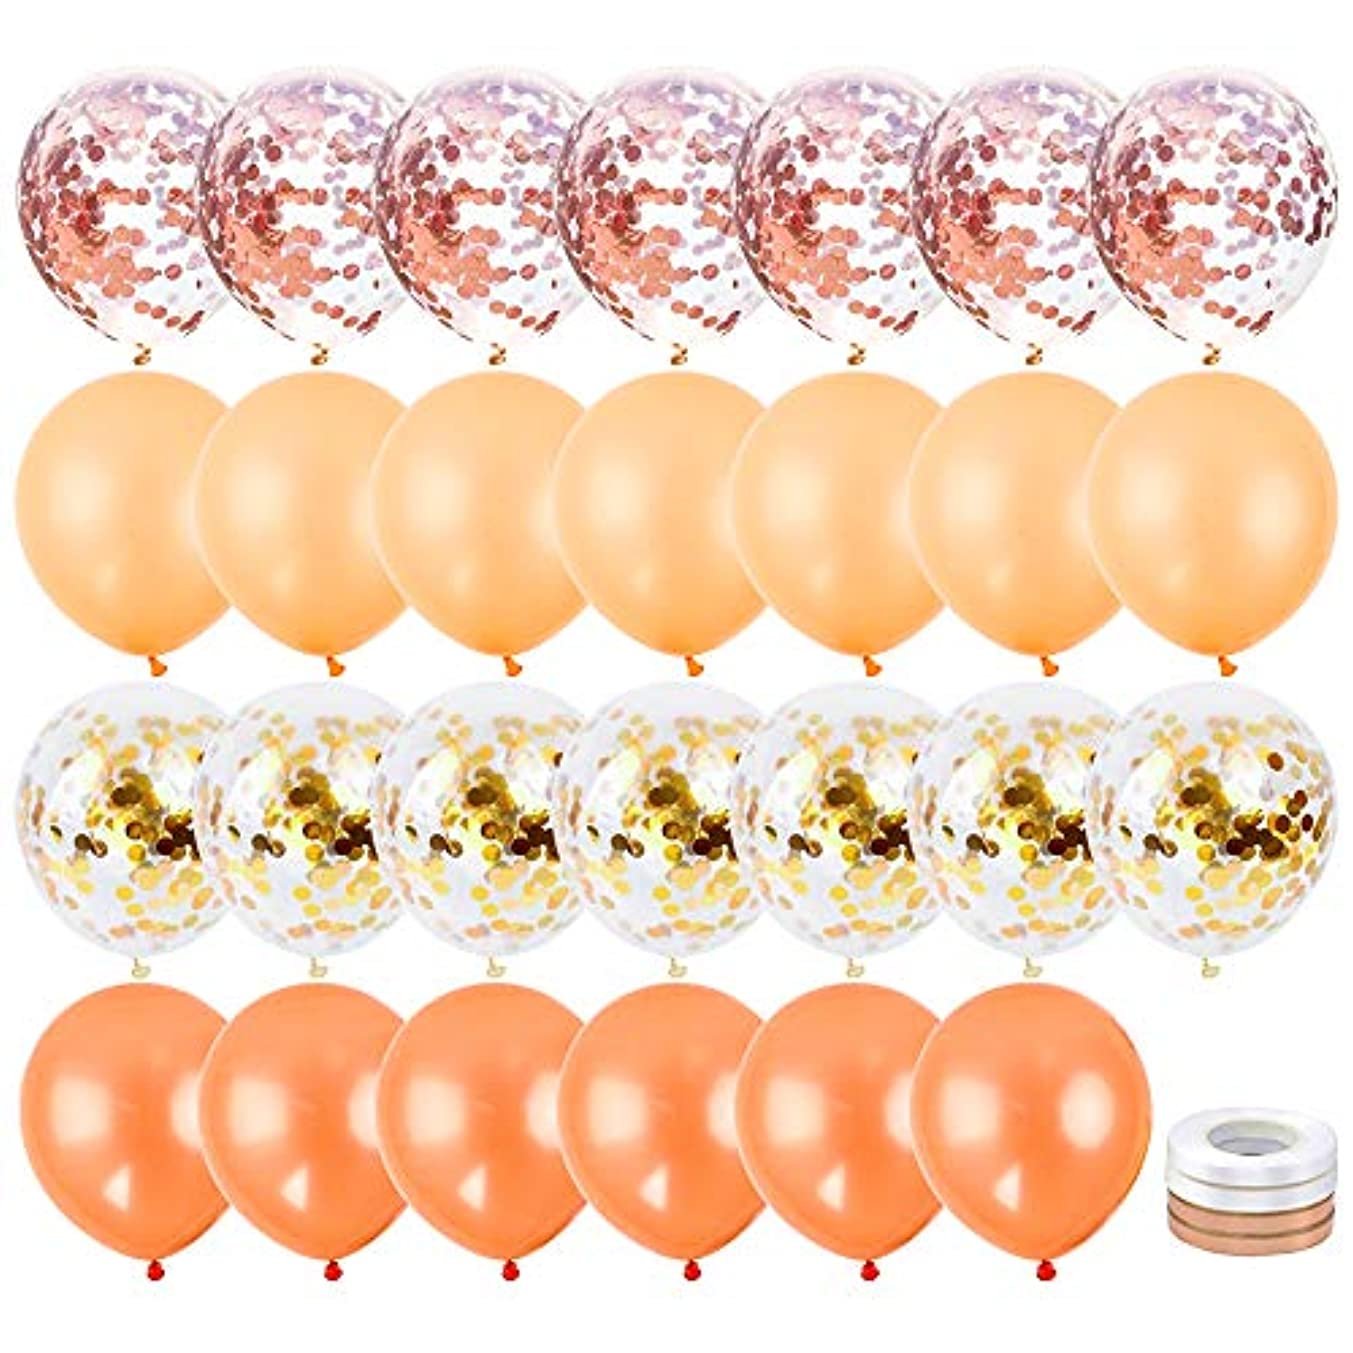 RUBFAC 80 12-inch Glitter Latex Balloons (Rose Gold, Rose Gold Confetti, Crimson, Gold Confetti Each 20), with 4 Ribbons For Weddings, Bridal and Baby Showers, Single Girls, Bachelorette, Vacation